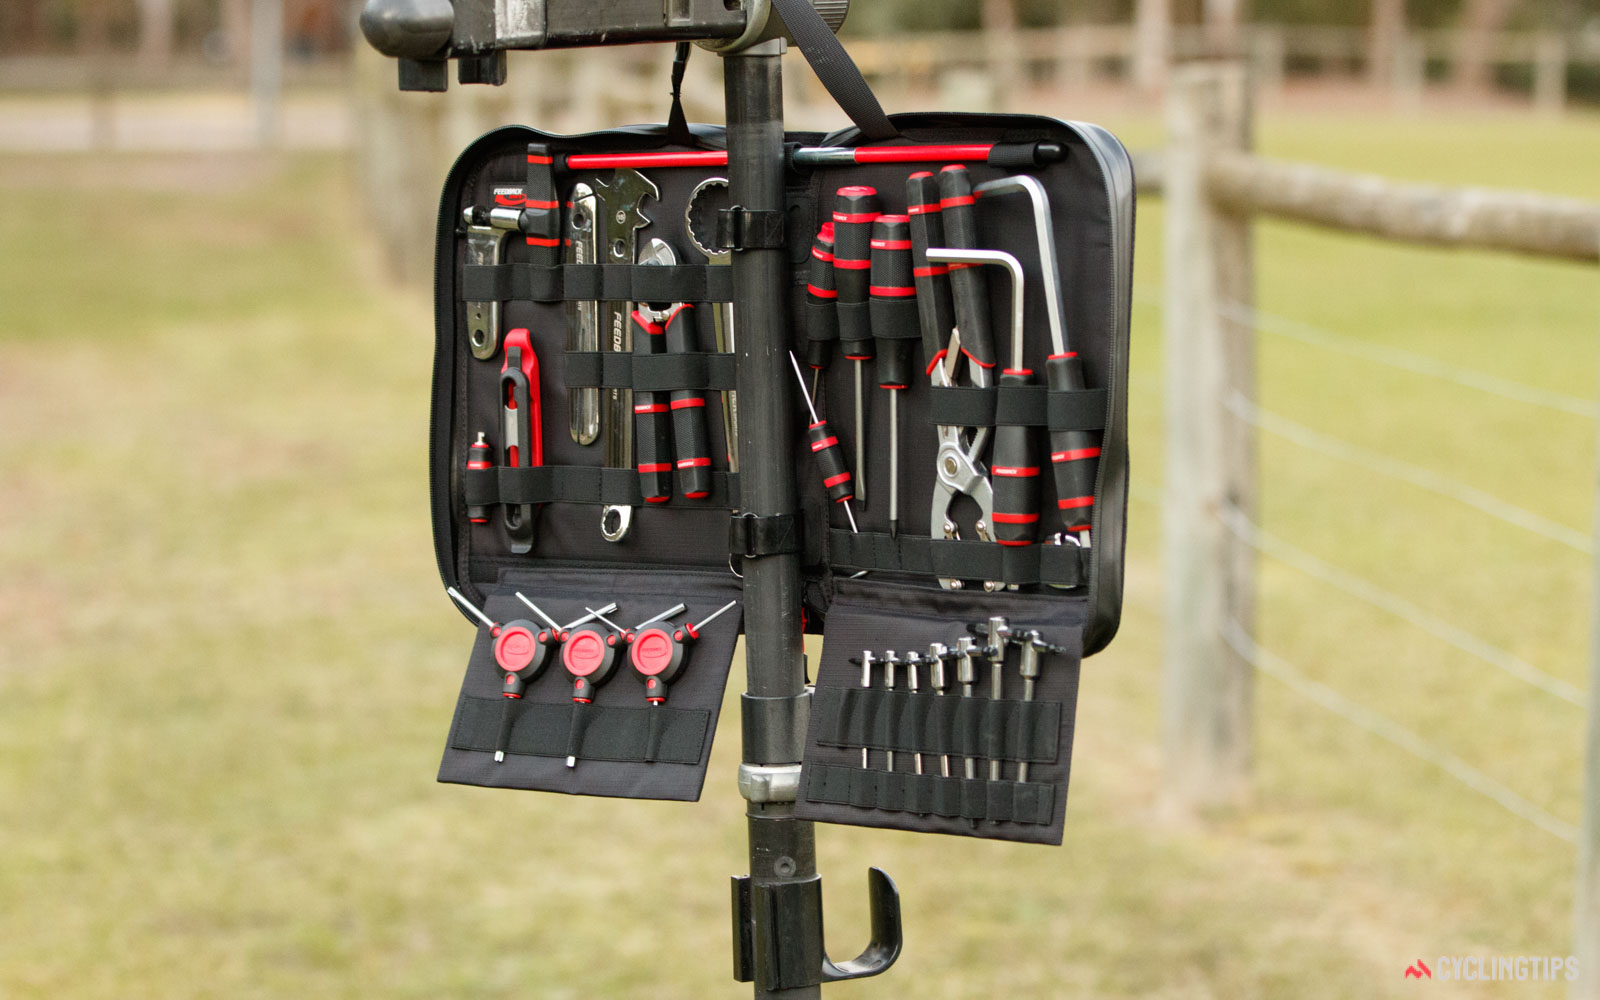 Feedback Sports Team Edition Bicycle Tool Kit